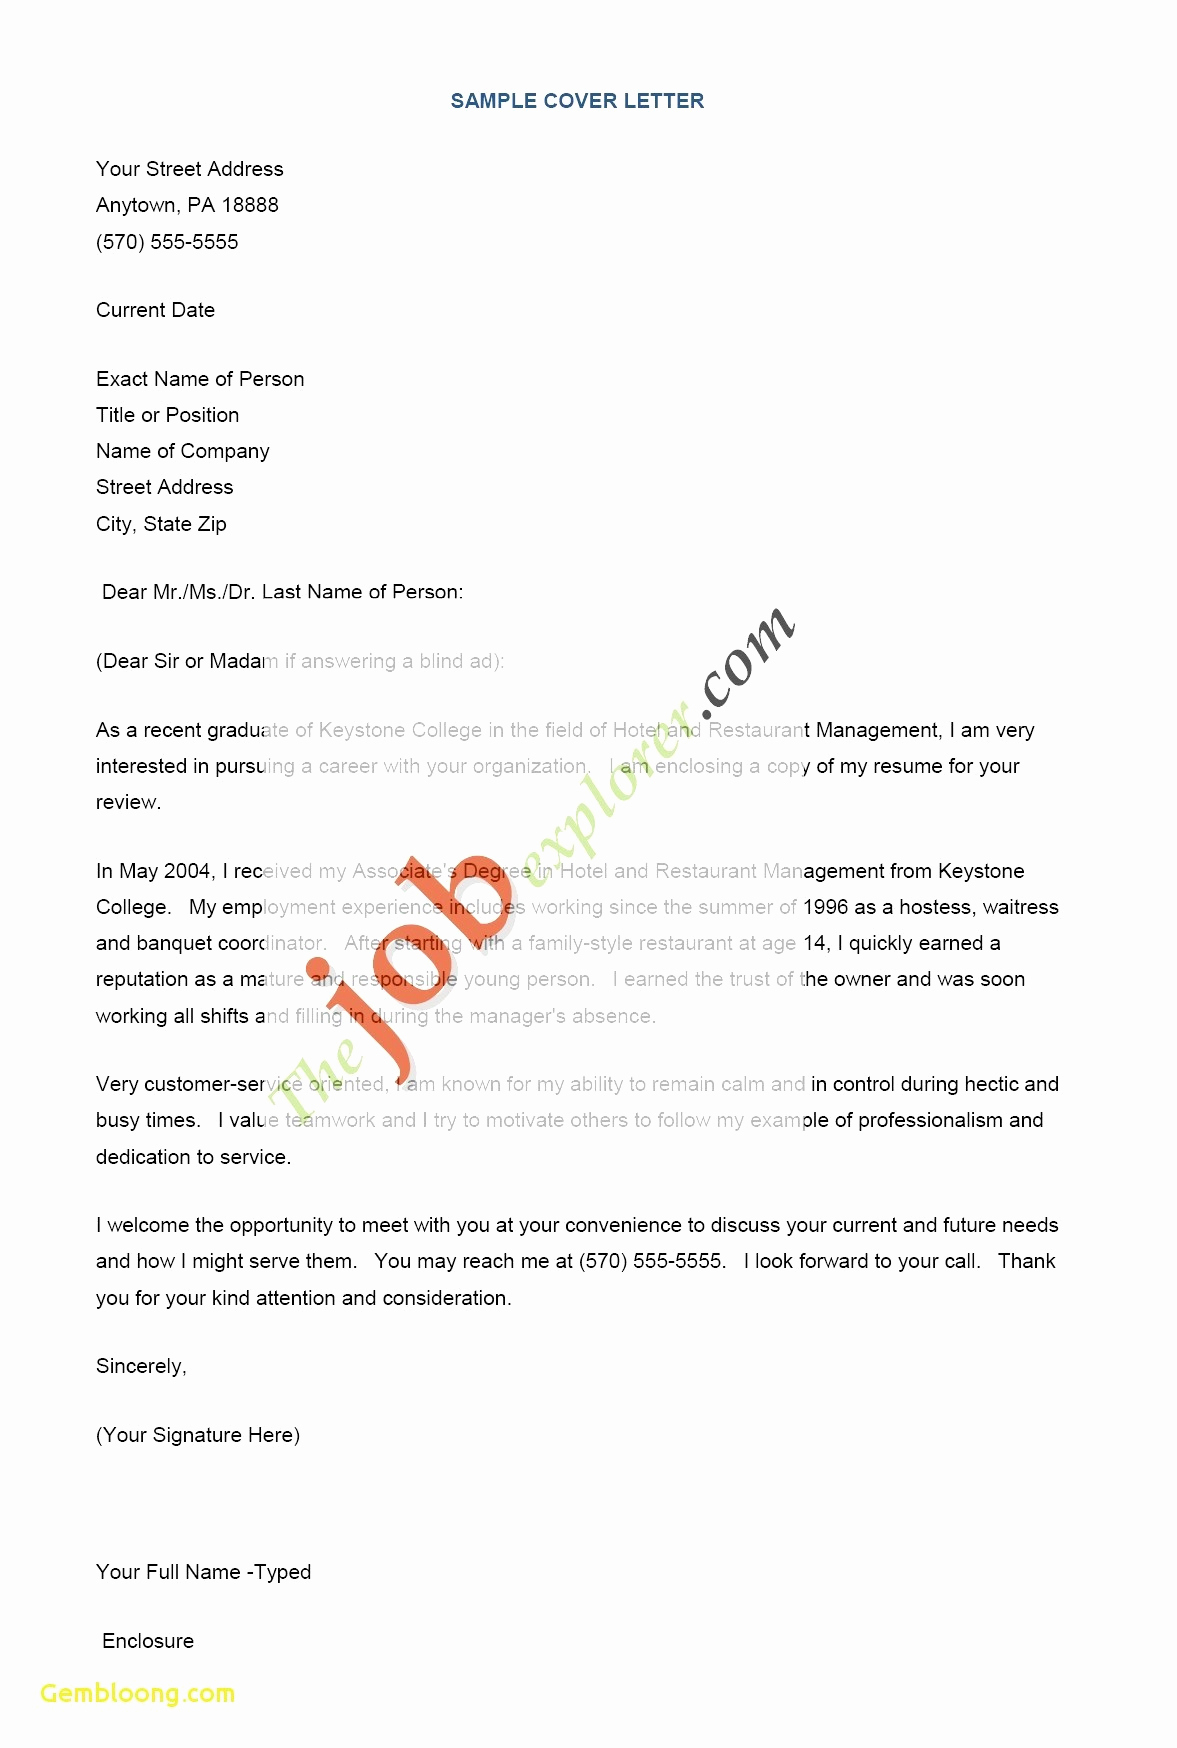 Physical therapist Cover Letter Template - Physical therapist Cover Letter Picture Elegant New How to Do Resume